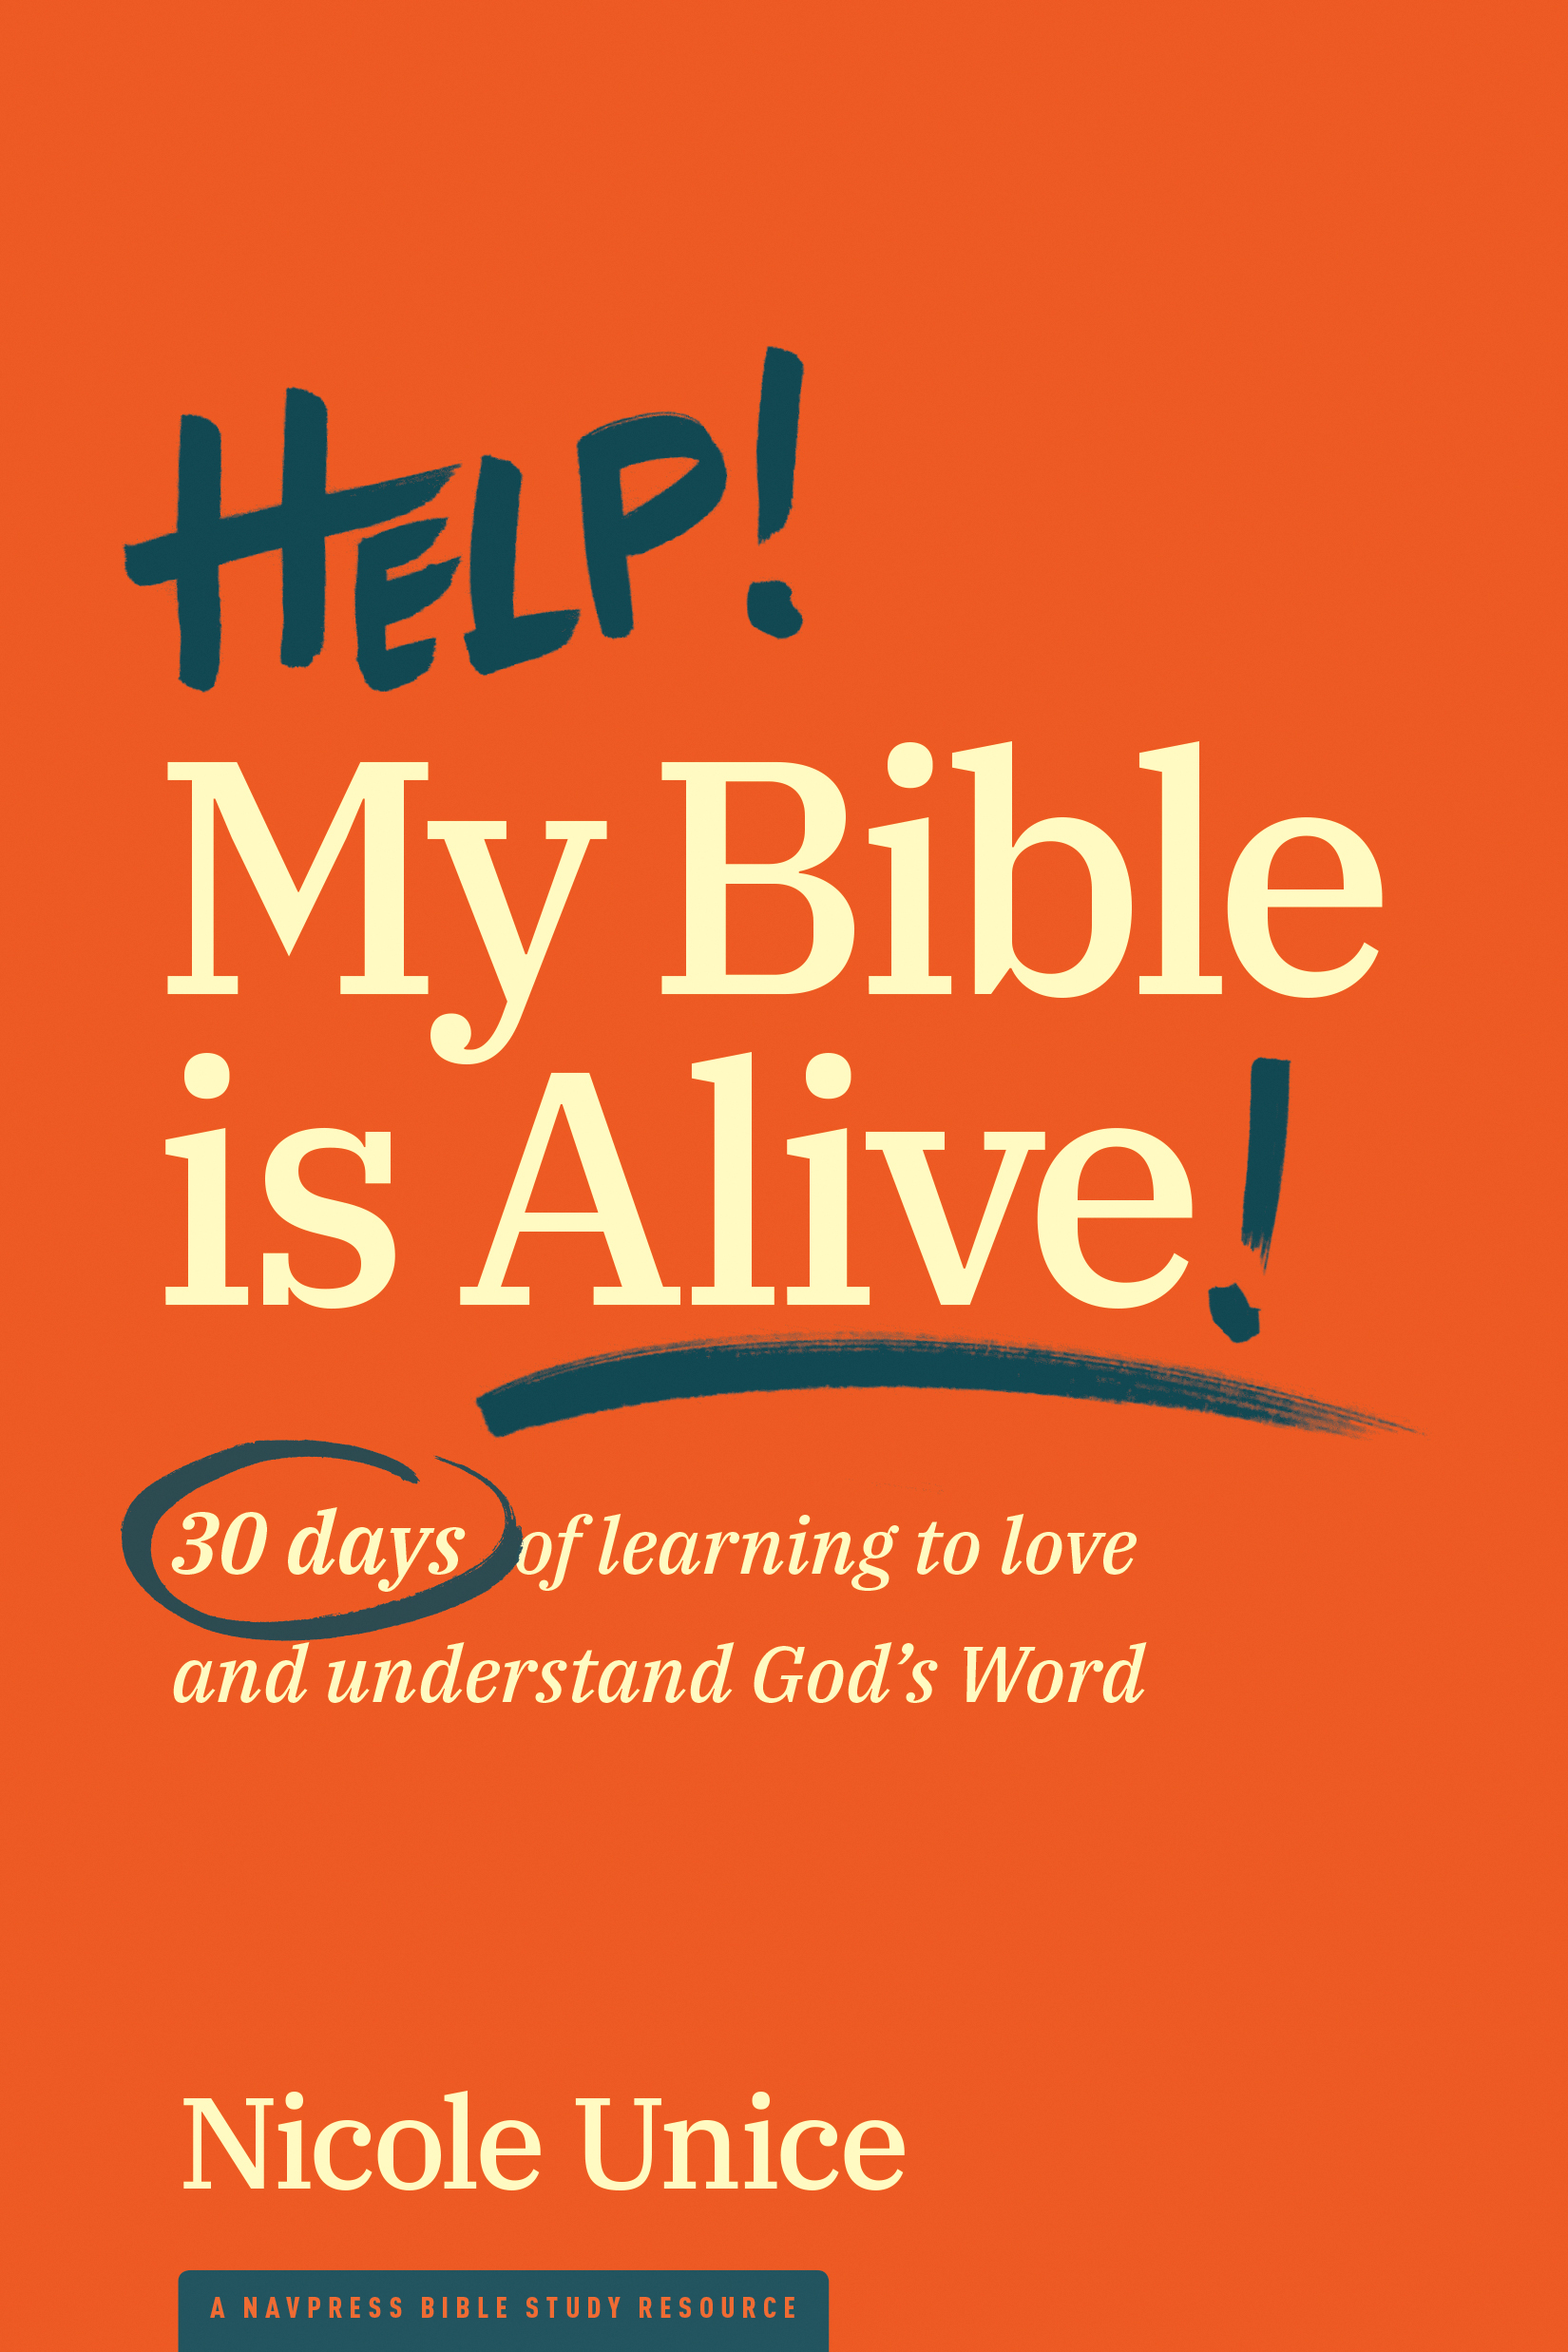 Cover of Help! My Bible is Alive!, by Nicole Unice